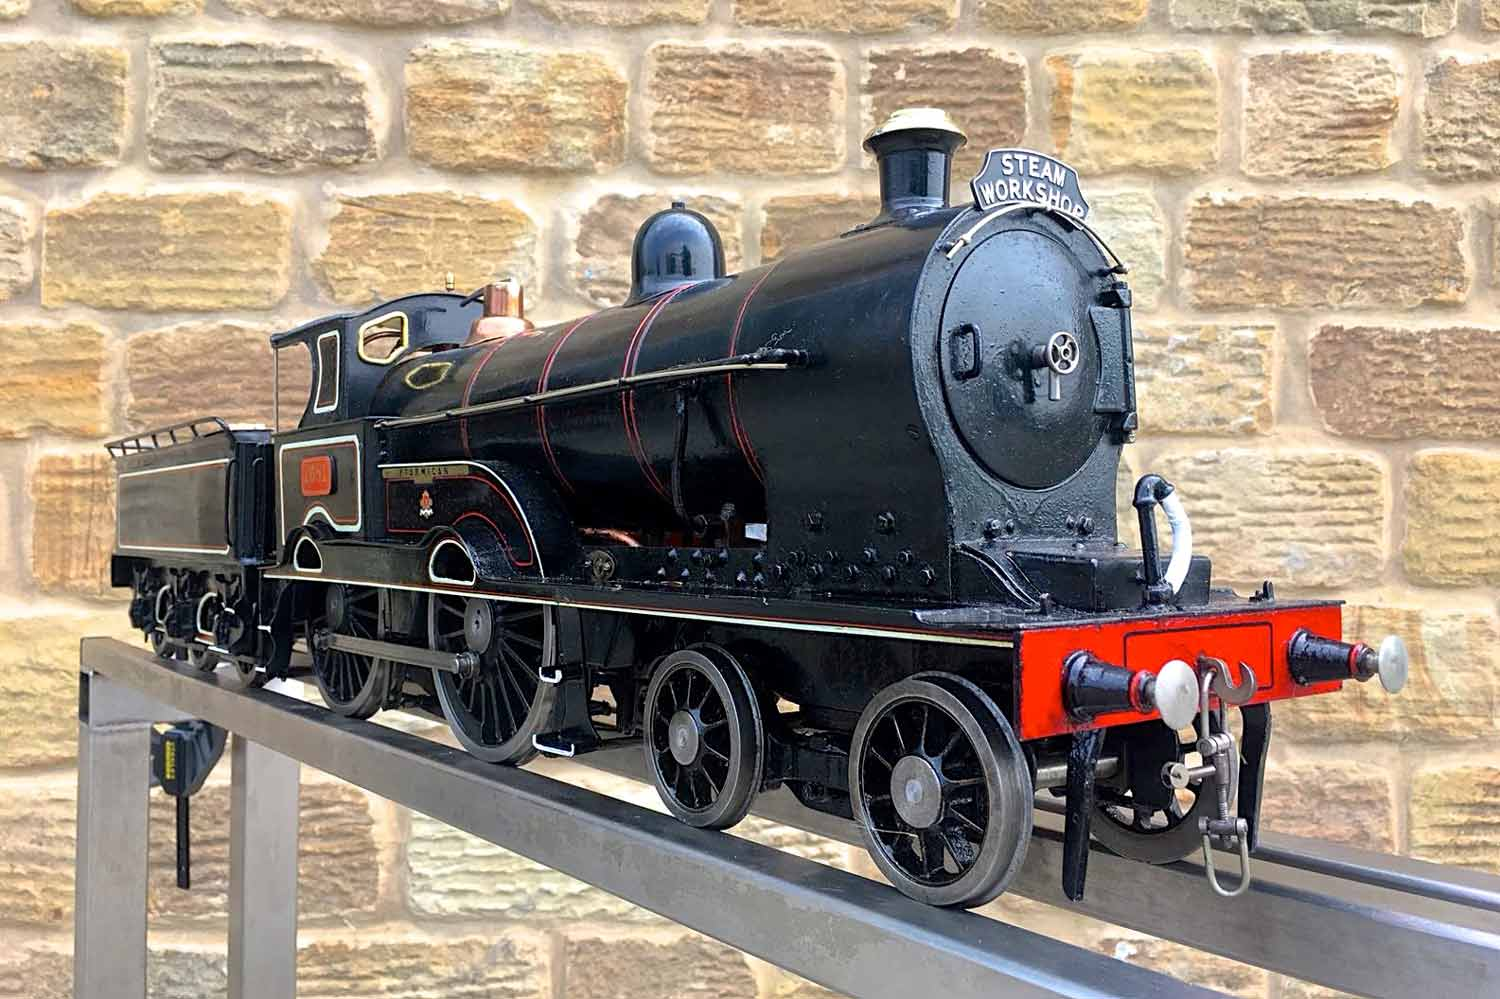 test 3-and-a-half-inch-LNWR-King-George-the-Fifth-live-steam-locomotive-for-sale-07